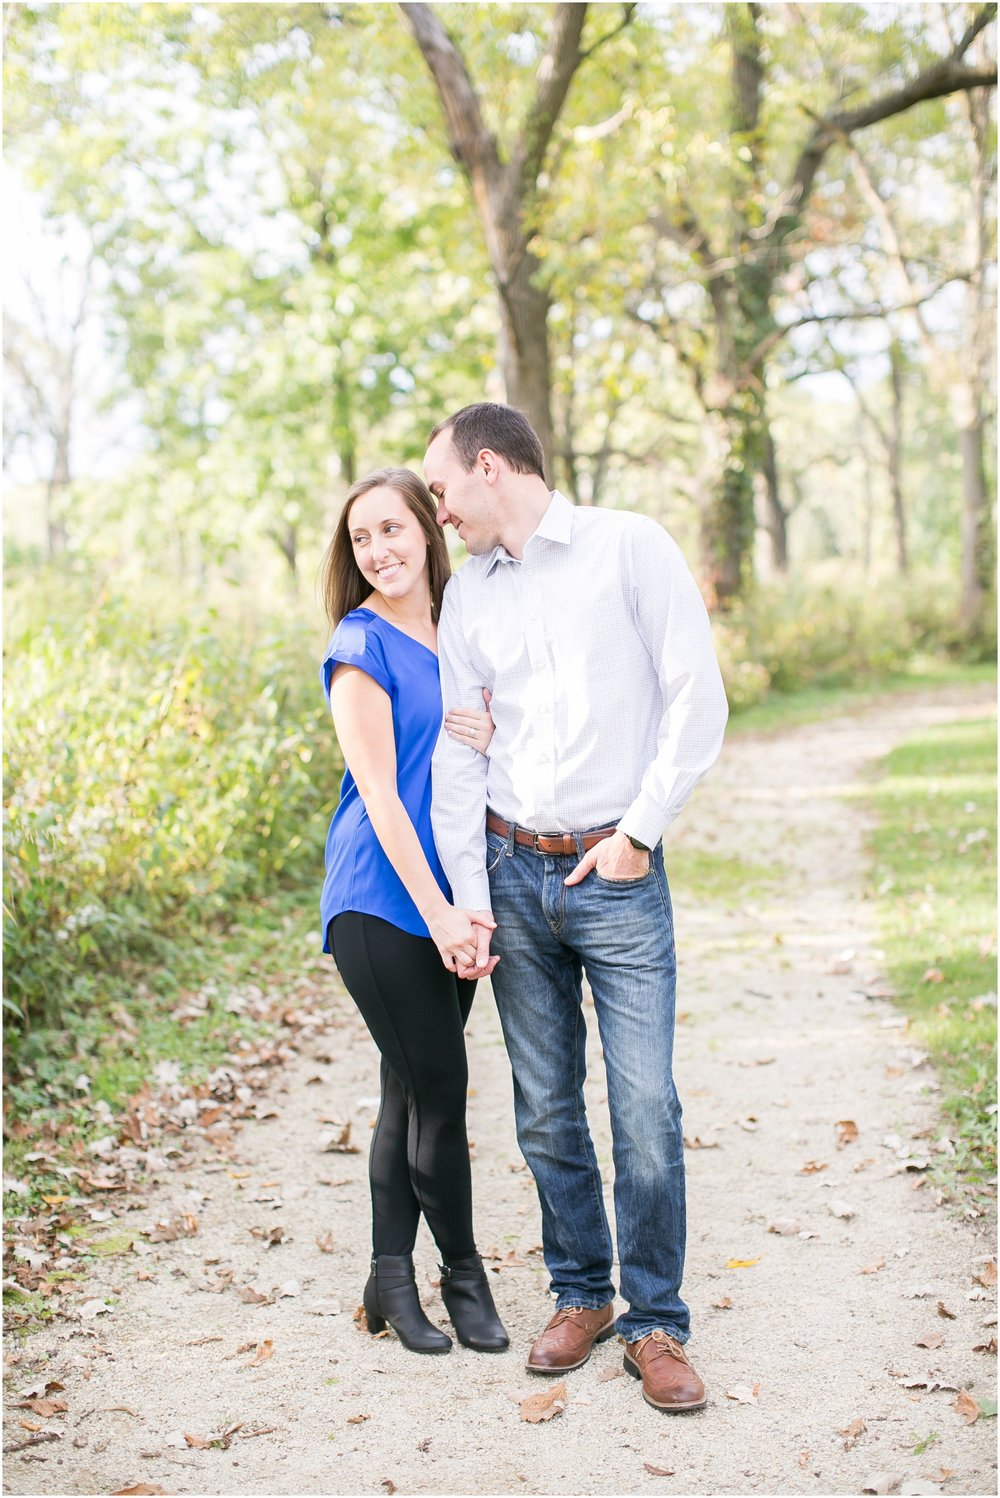 Beckman_Mill_Engagement_Session_Wisconsin_Wedding_Photographer_1619.jpg